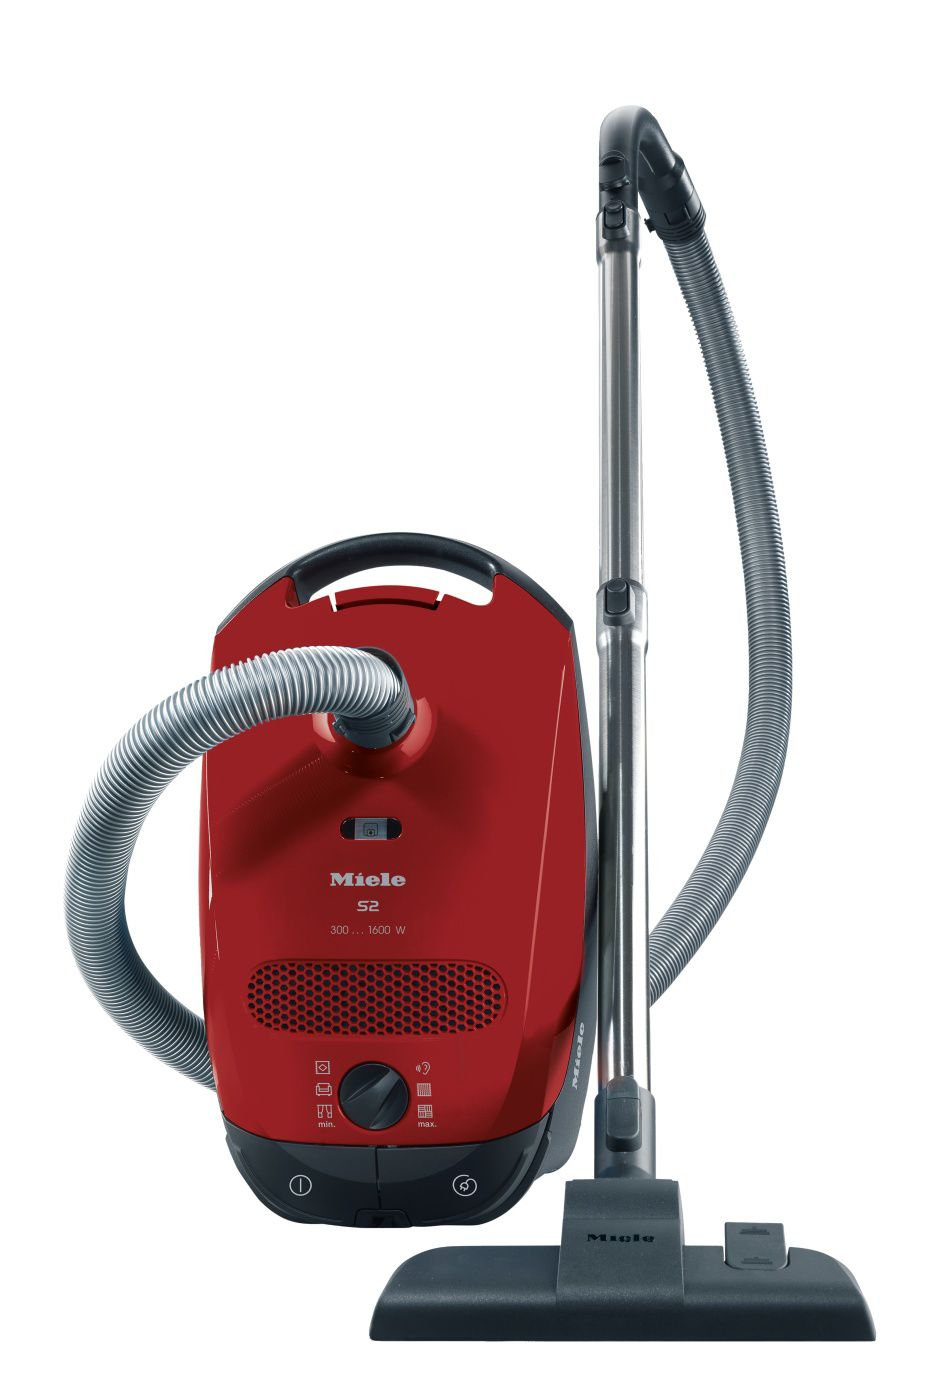 Miele Compact Vacuum Cleaner - Autumn Red S2111